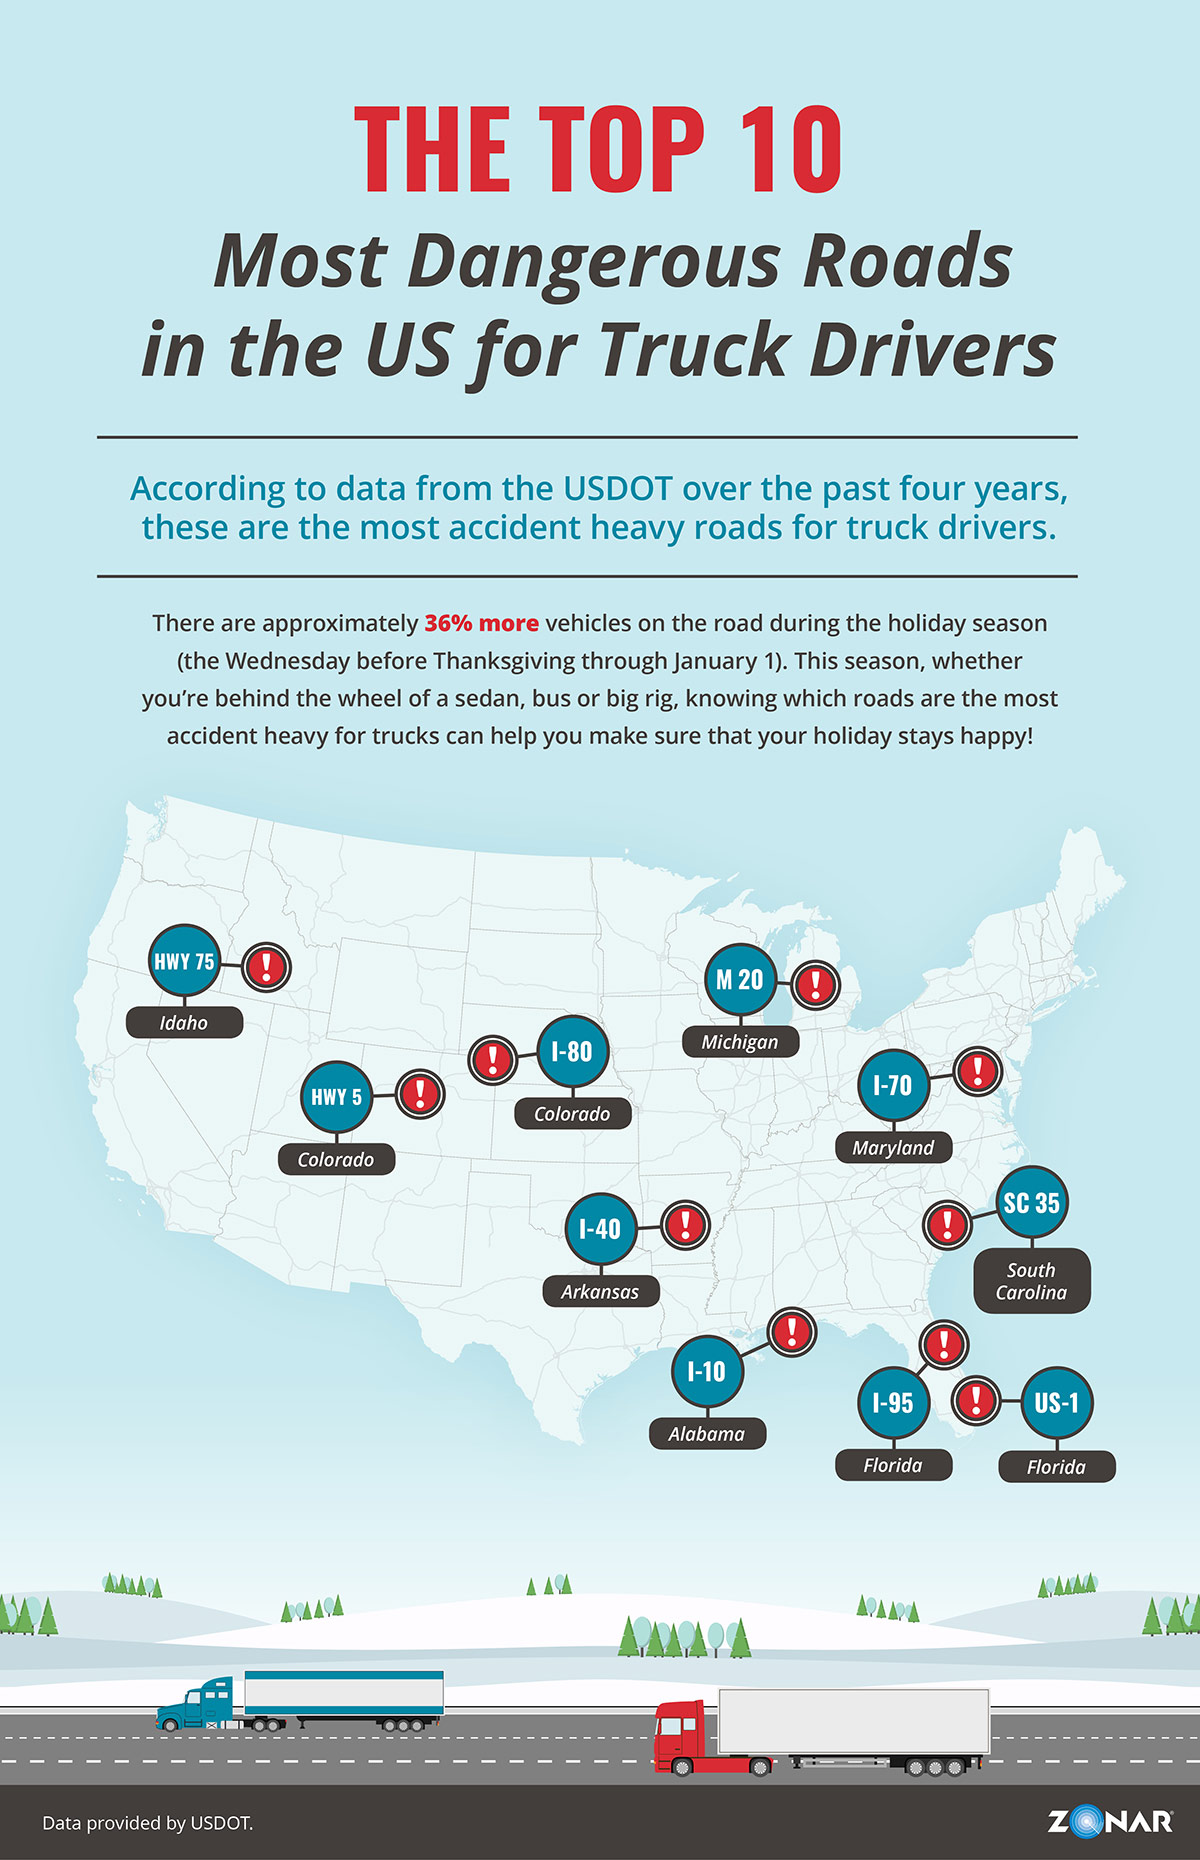 Infographic: Top 10 Most Dangerous Roads in the US for Truck Drivers